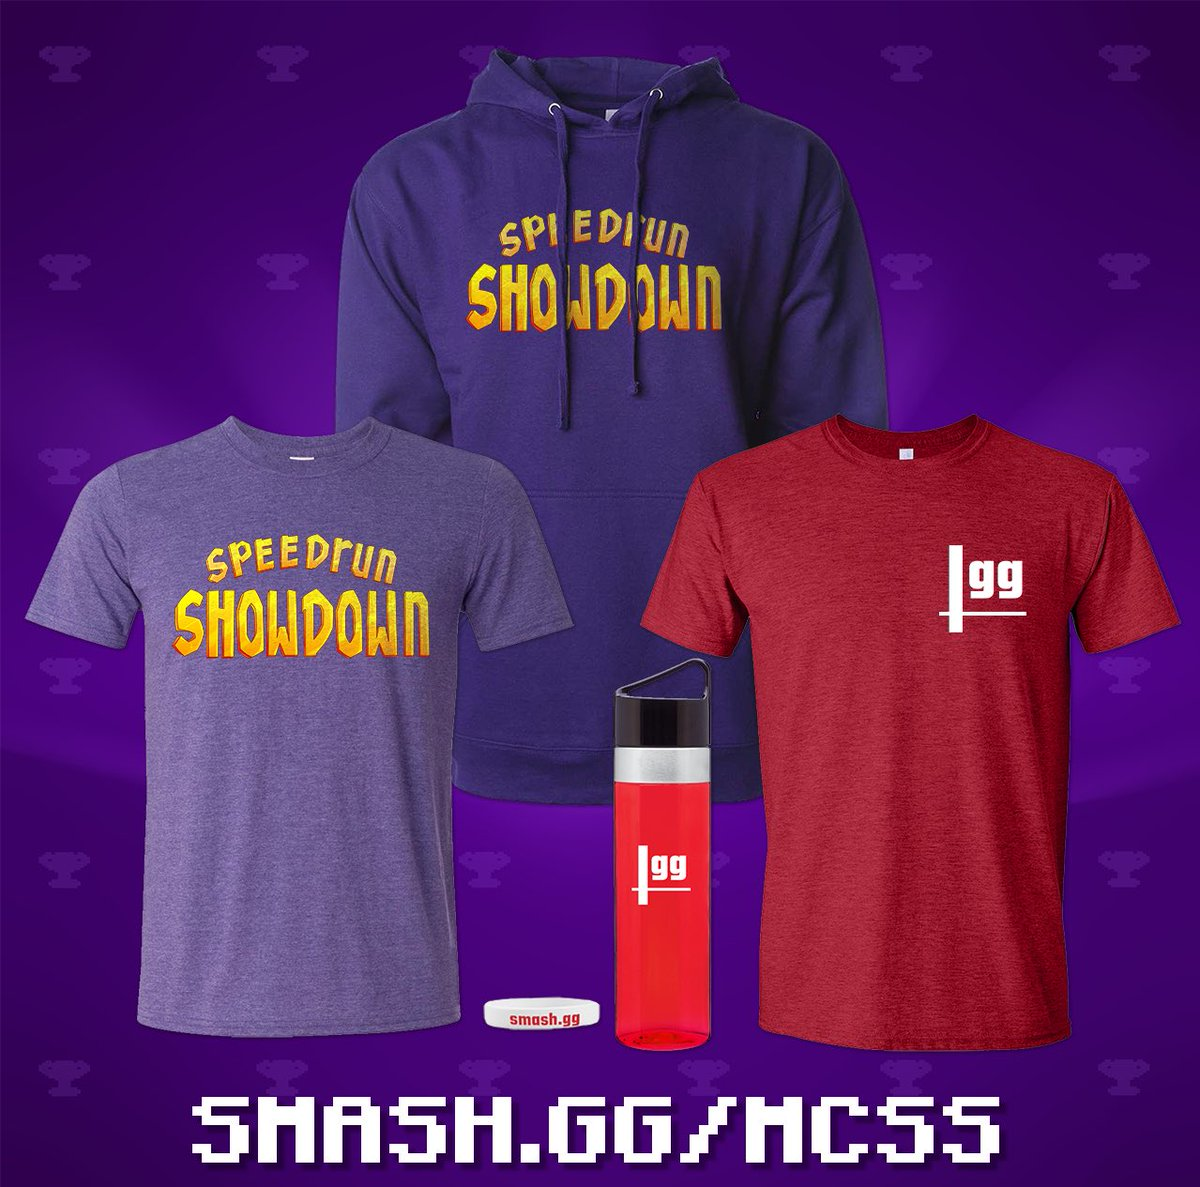 nerdi_tv - Think you know how your favorite streamers will perform in Minecraft Speedrun Showdown? Put your predictions to the test with a @smashgg fantasy bracket and win some free merch at  !